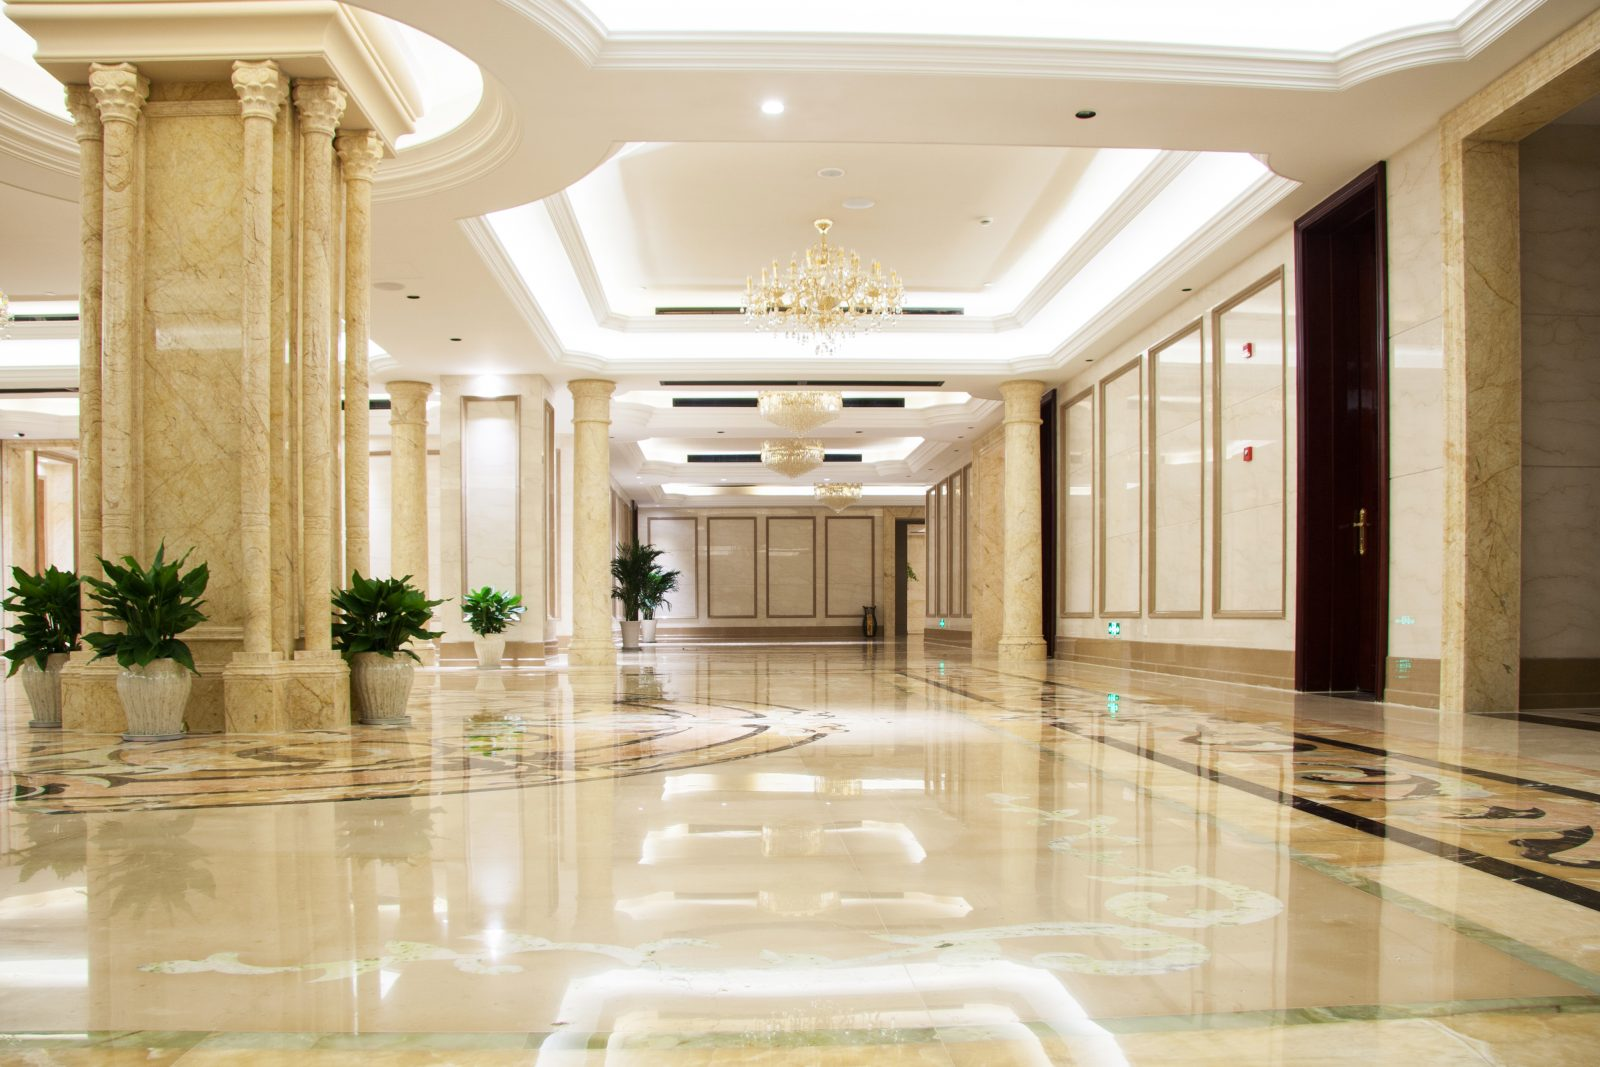 An illuminated hotel lobby with bright lights and marble floors.